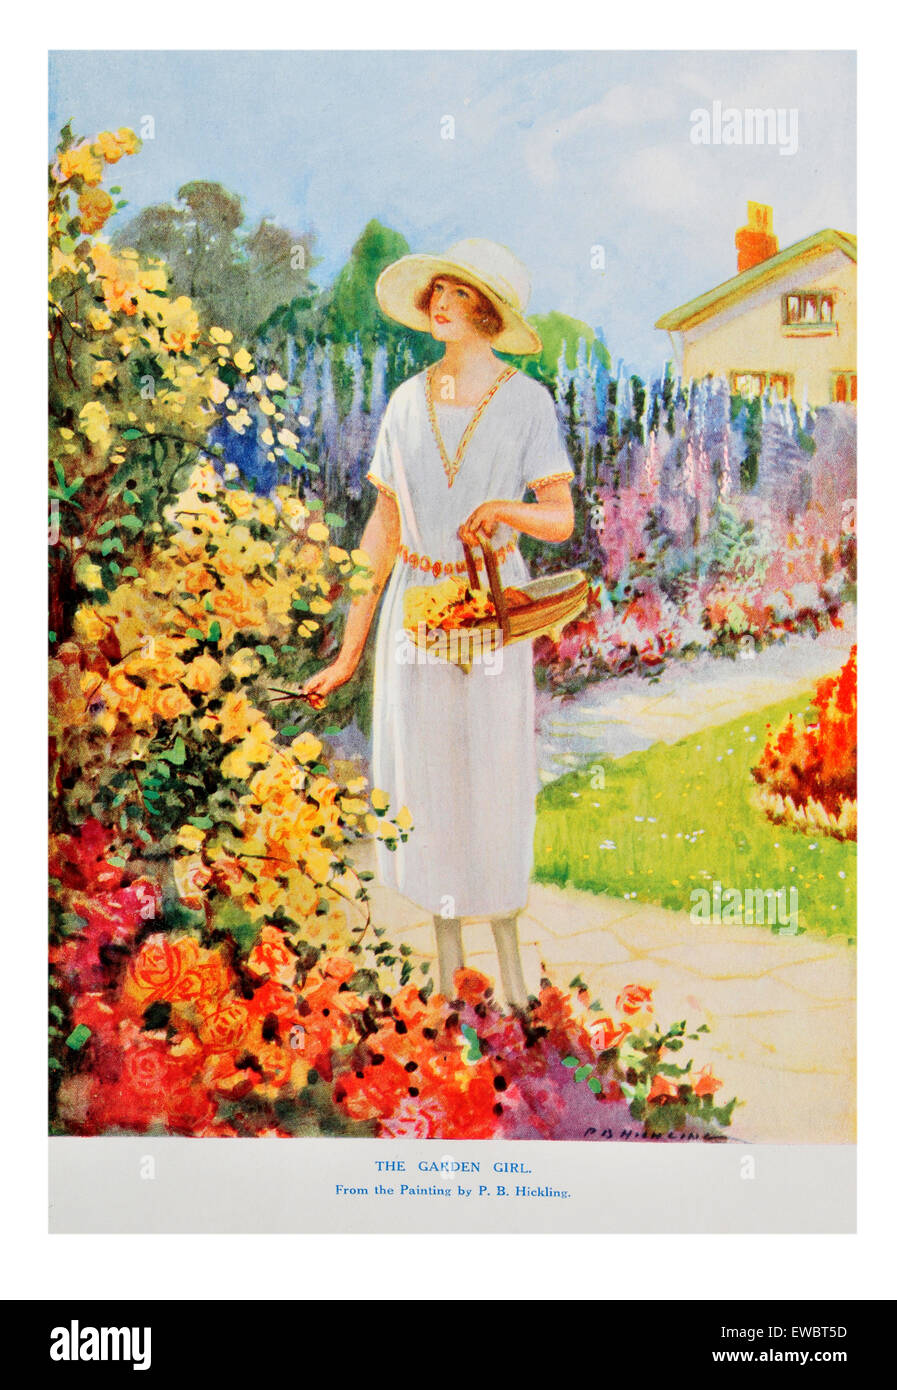 portrait of 1930's woman in colorful spring cottage garden - Stock Image